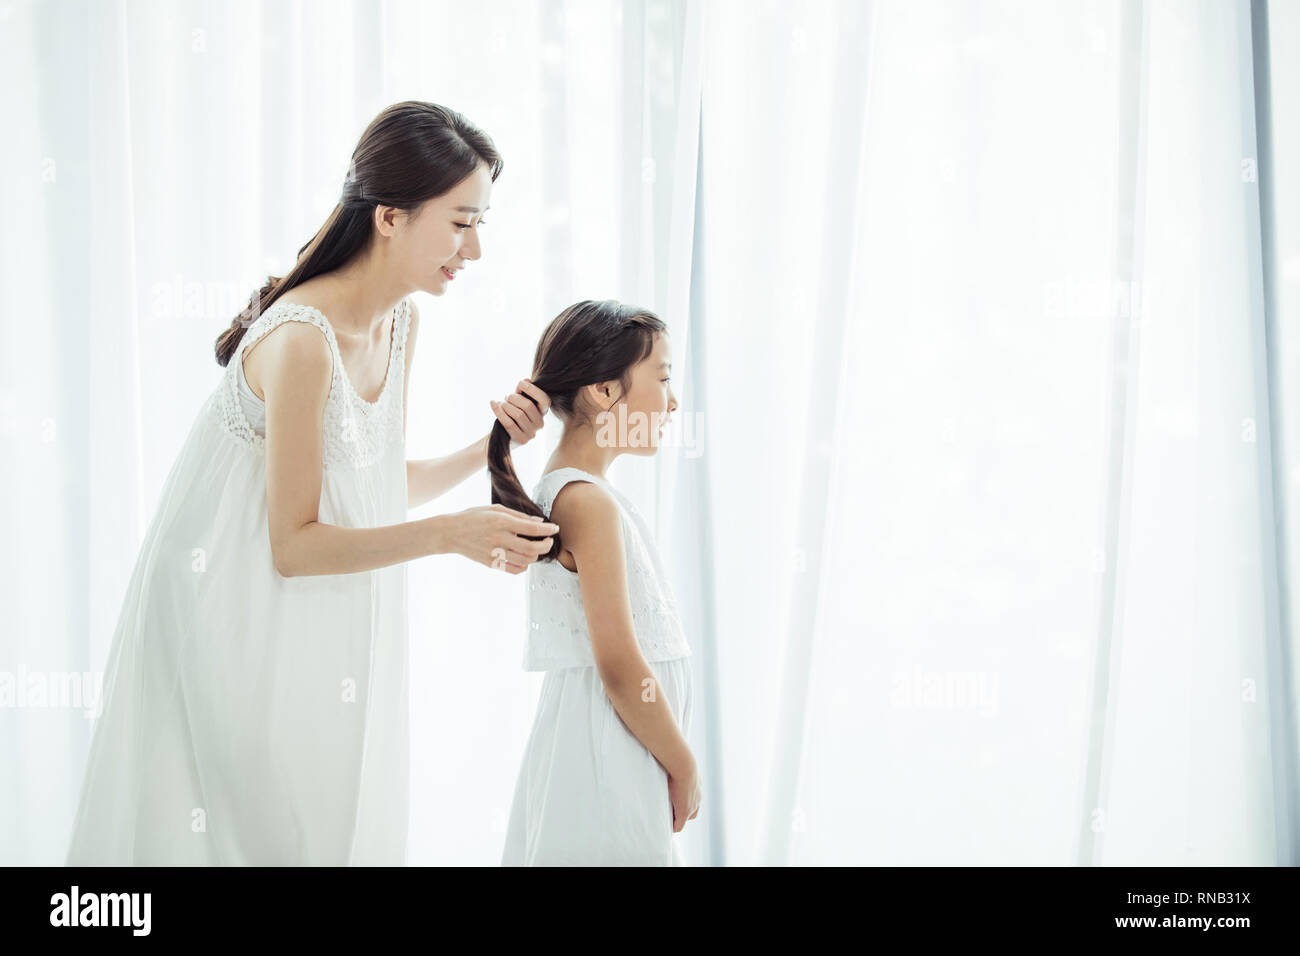 A mother who ties her daughter's hair - Stock Image